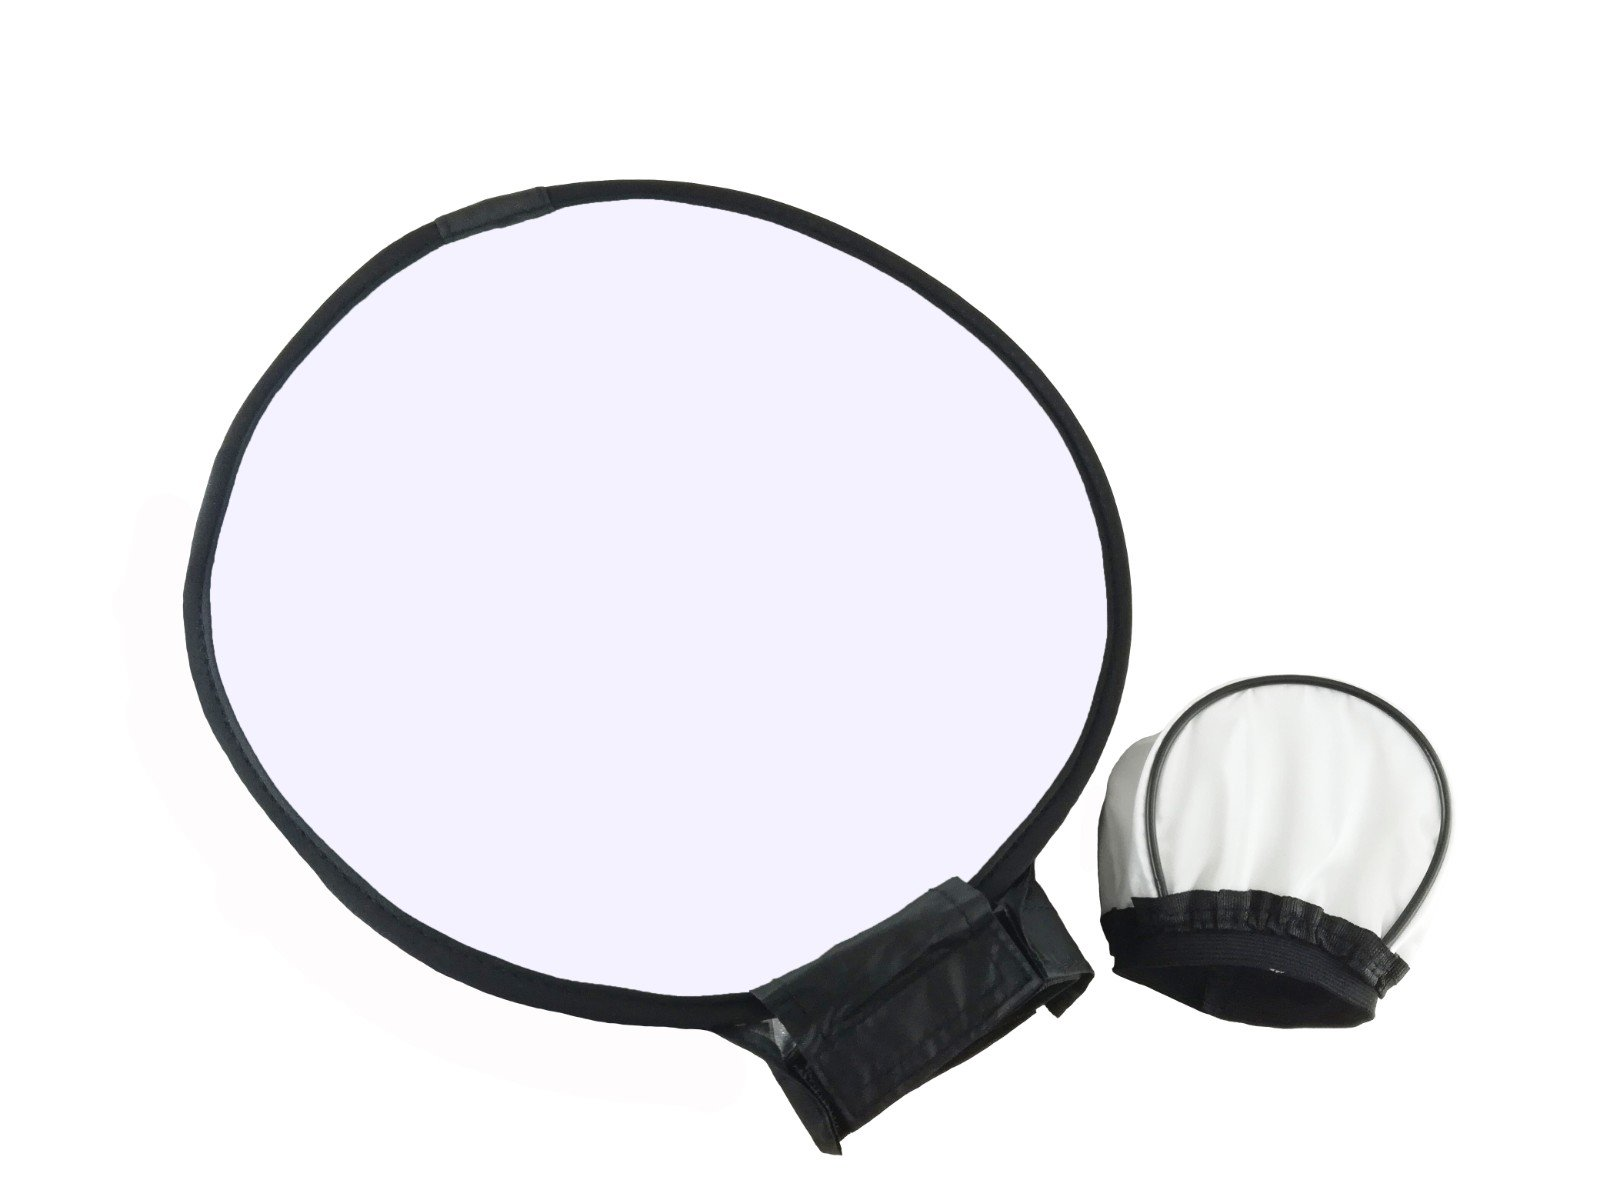 EXMAX 11.8inches/30cm Collapsible Round Softbox Diffuser with a carring bag and 3.5x2.4inches Universal Soft Mini Bounce Diffuser Cap for Canon Nikon Sony Yongnuo Speedlight